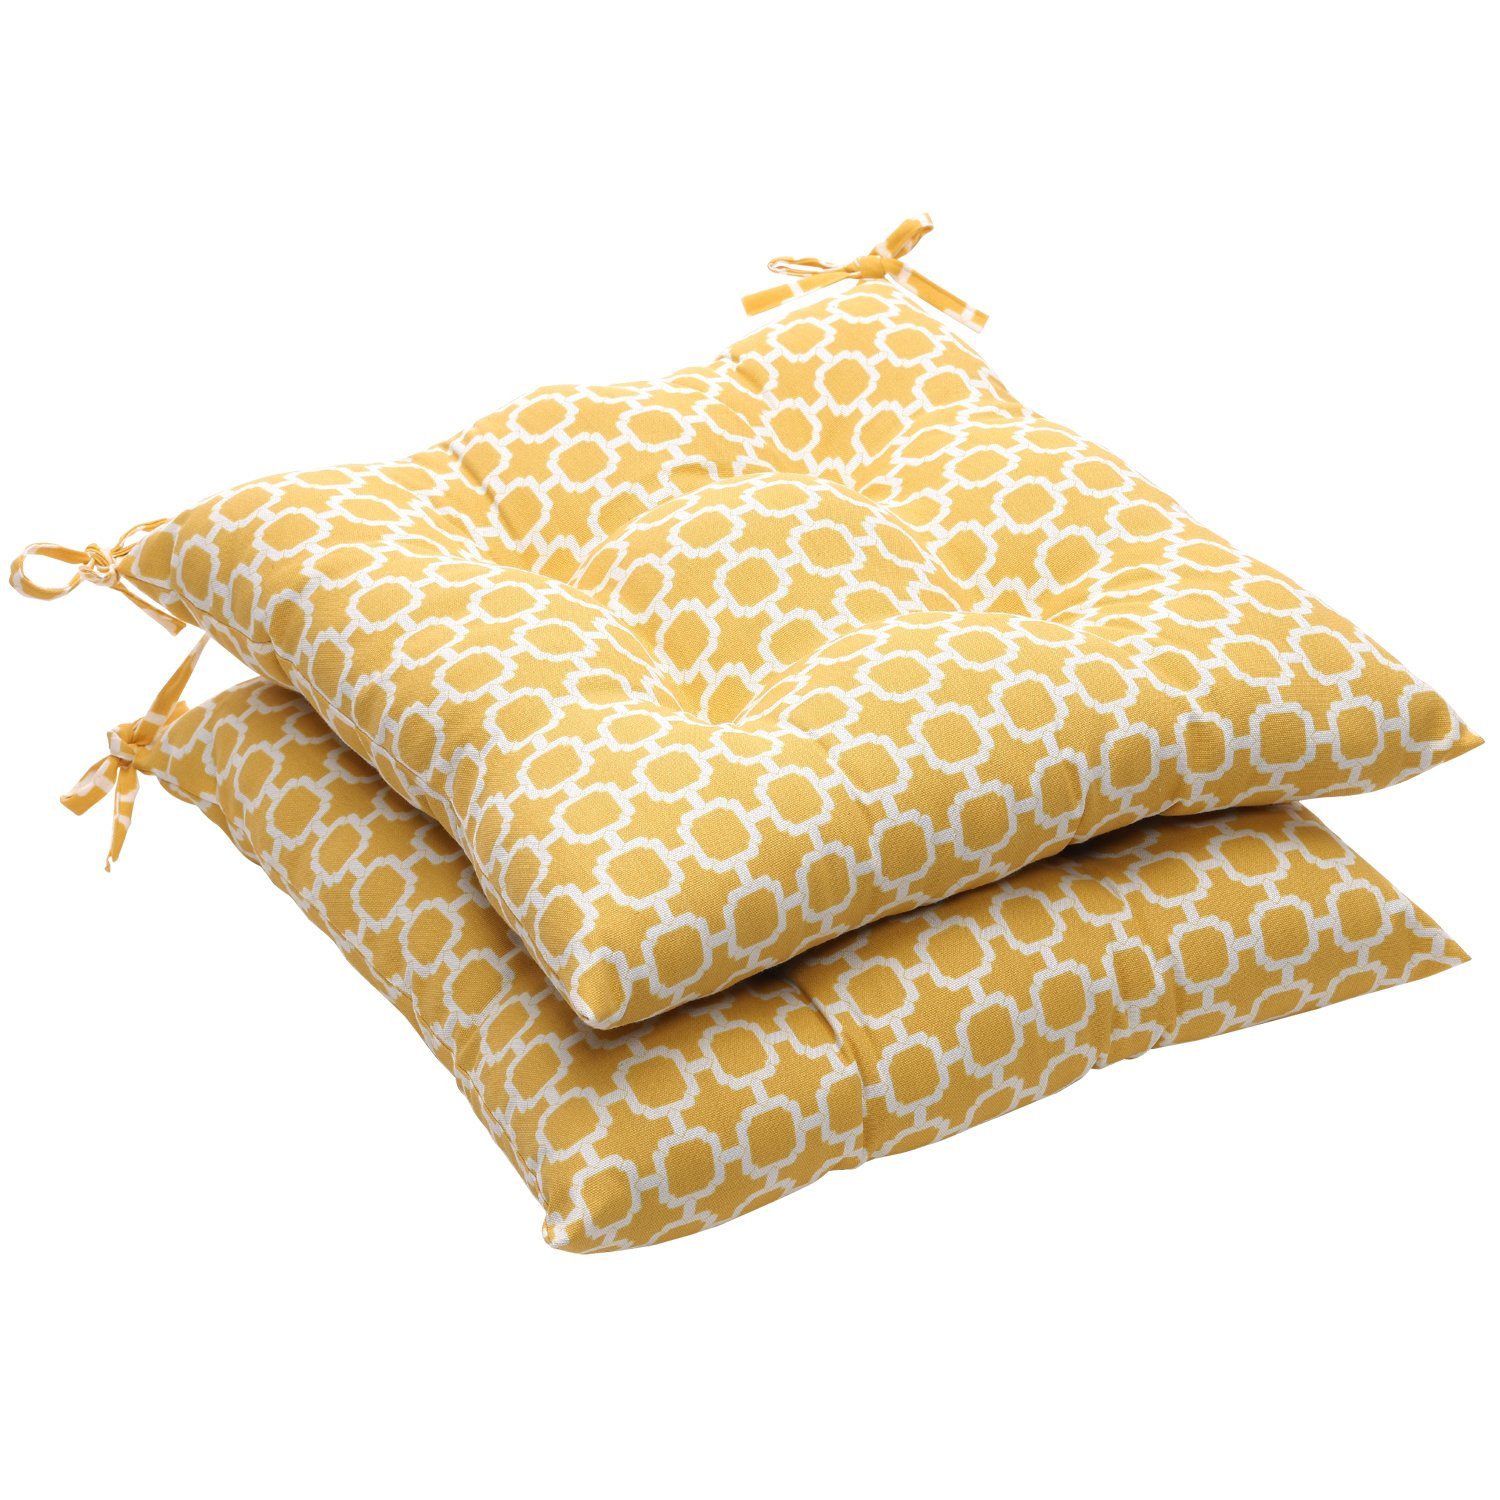 Pillow Perfect Indoor Outdoor Geometric Tufted Seat Cushion, 19 L x 18-1 2 W x 5 D, Yellow White